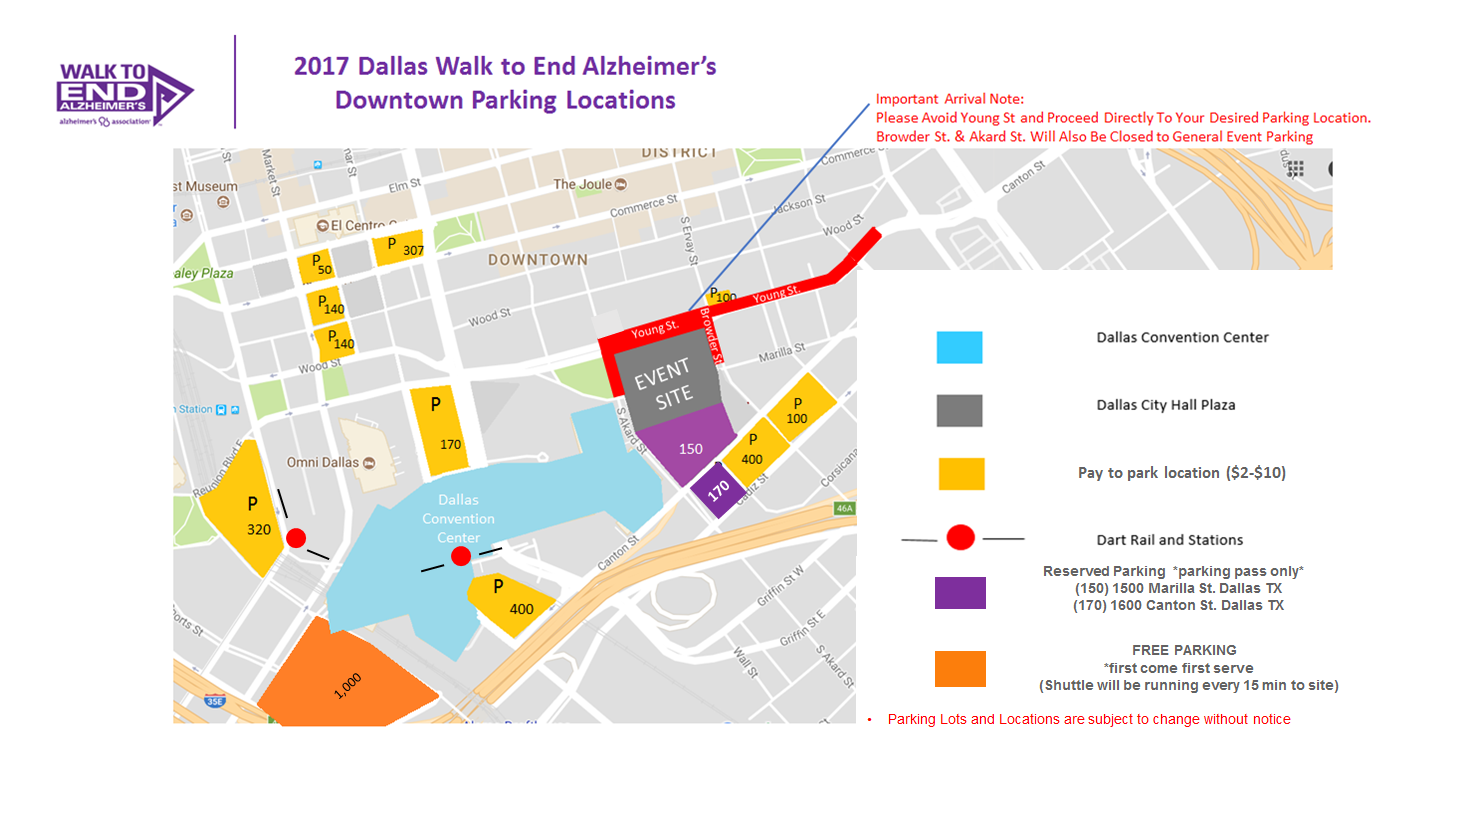 New and Final Dallas parking map 2017 Walk